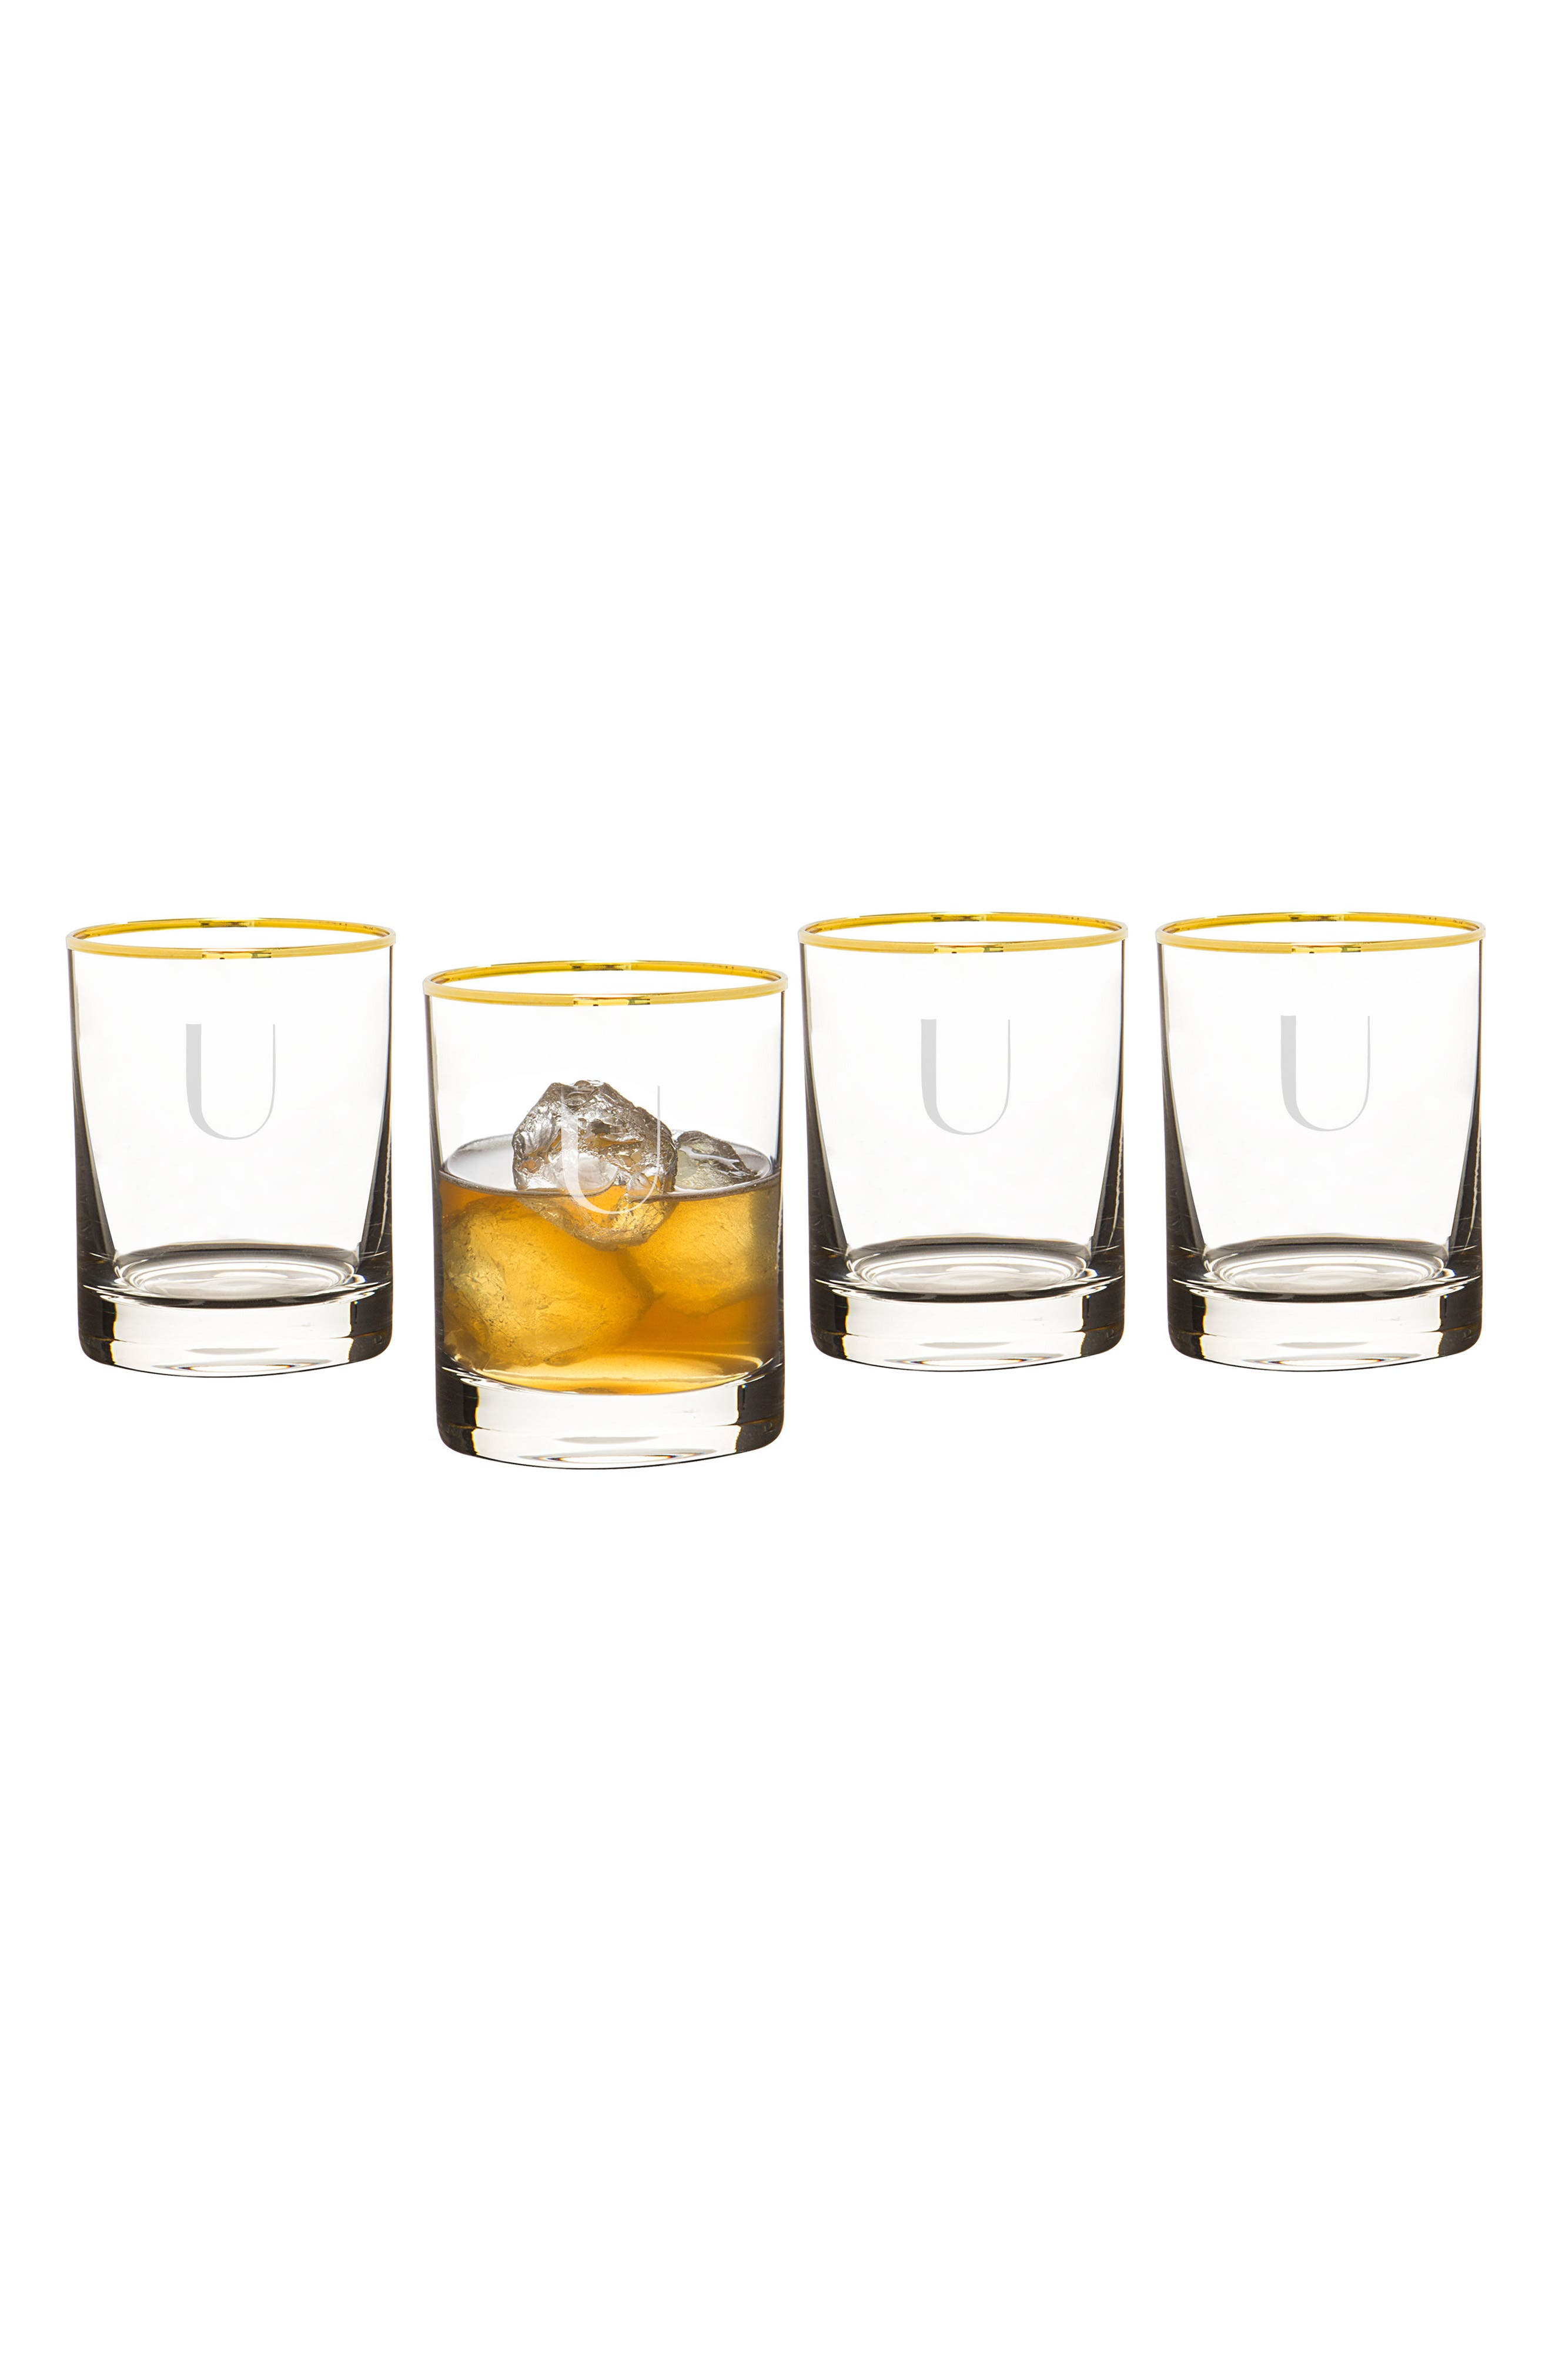 Monogram Set of 4 Double Old Fashioned Glasses,                             Main thumbnail 21, color,